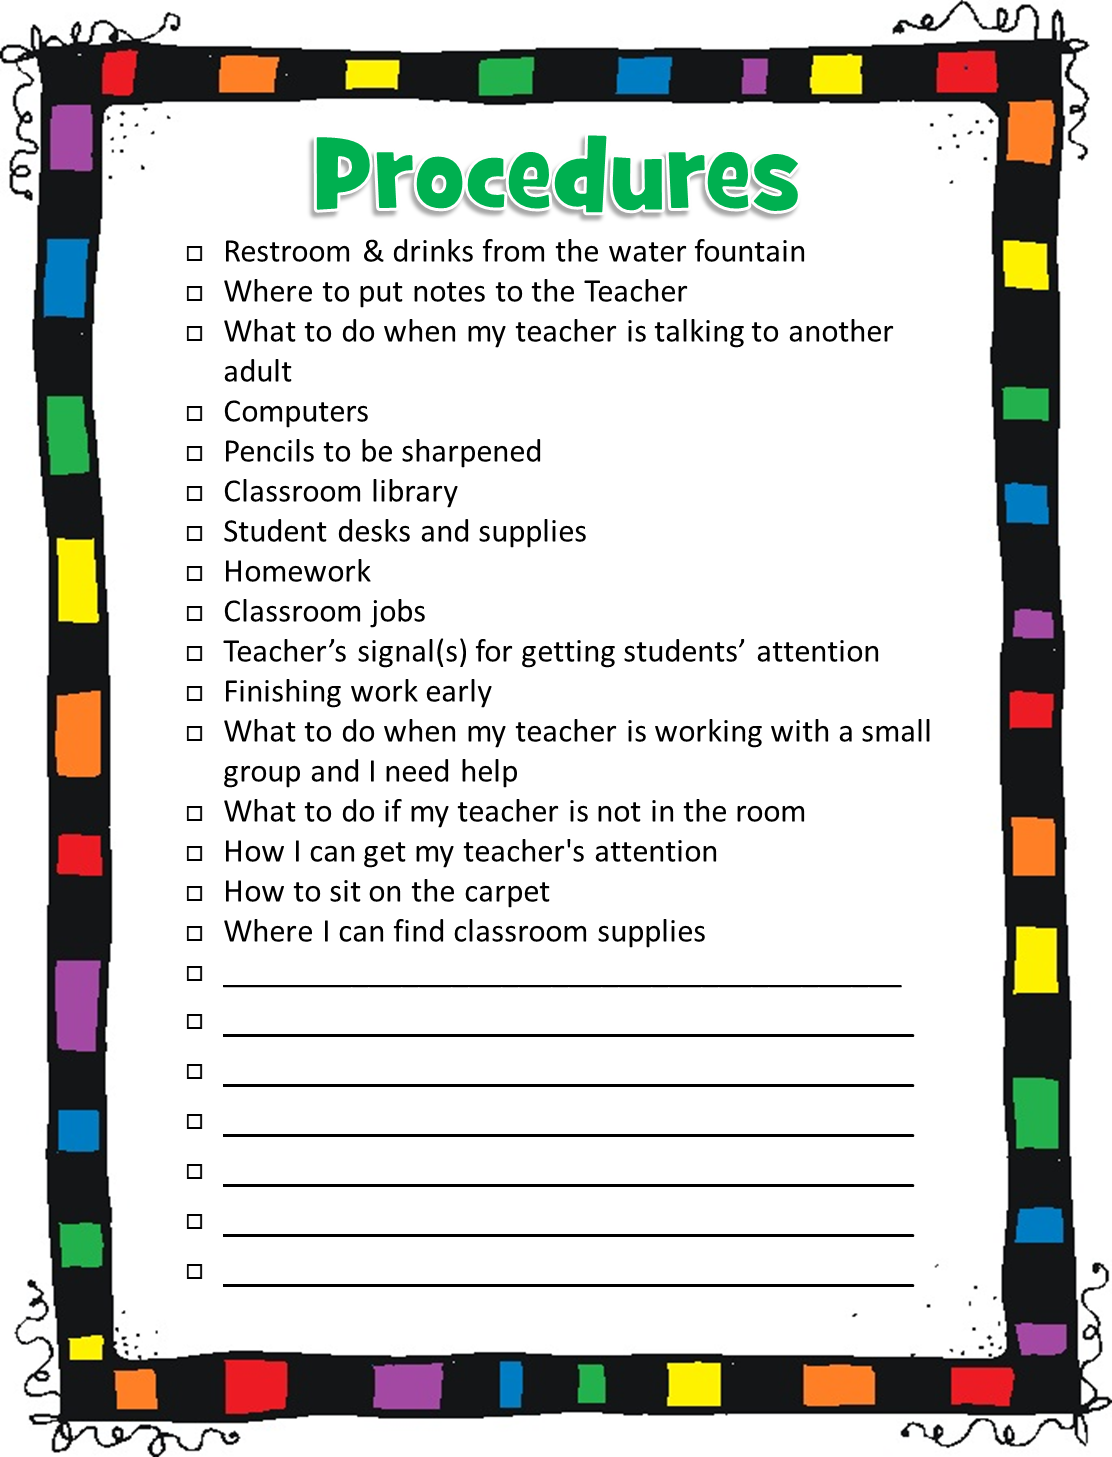 classroom procedures This product contains 30 classroom procedures to teach your students establishing classroom procedures and routines is one of the #1 priorities for teachers during back to school time and beyond.